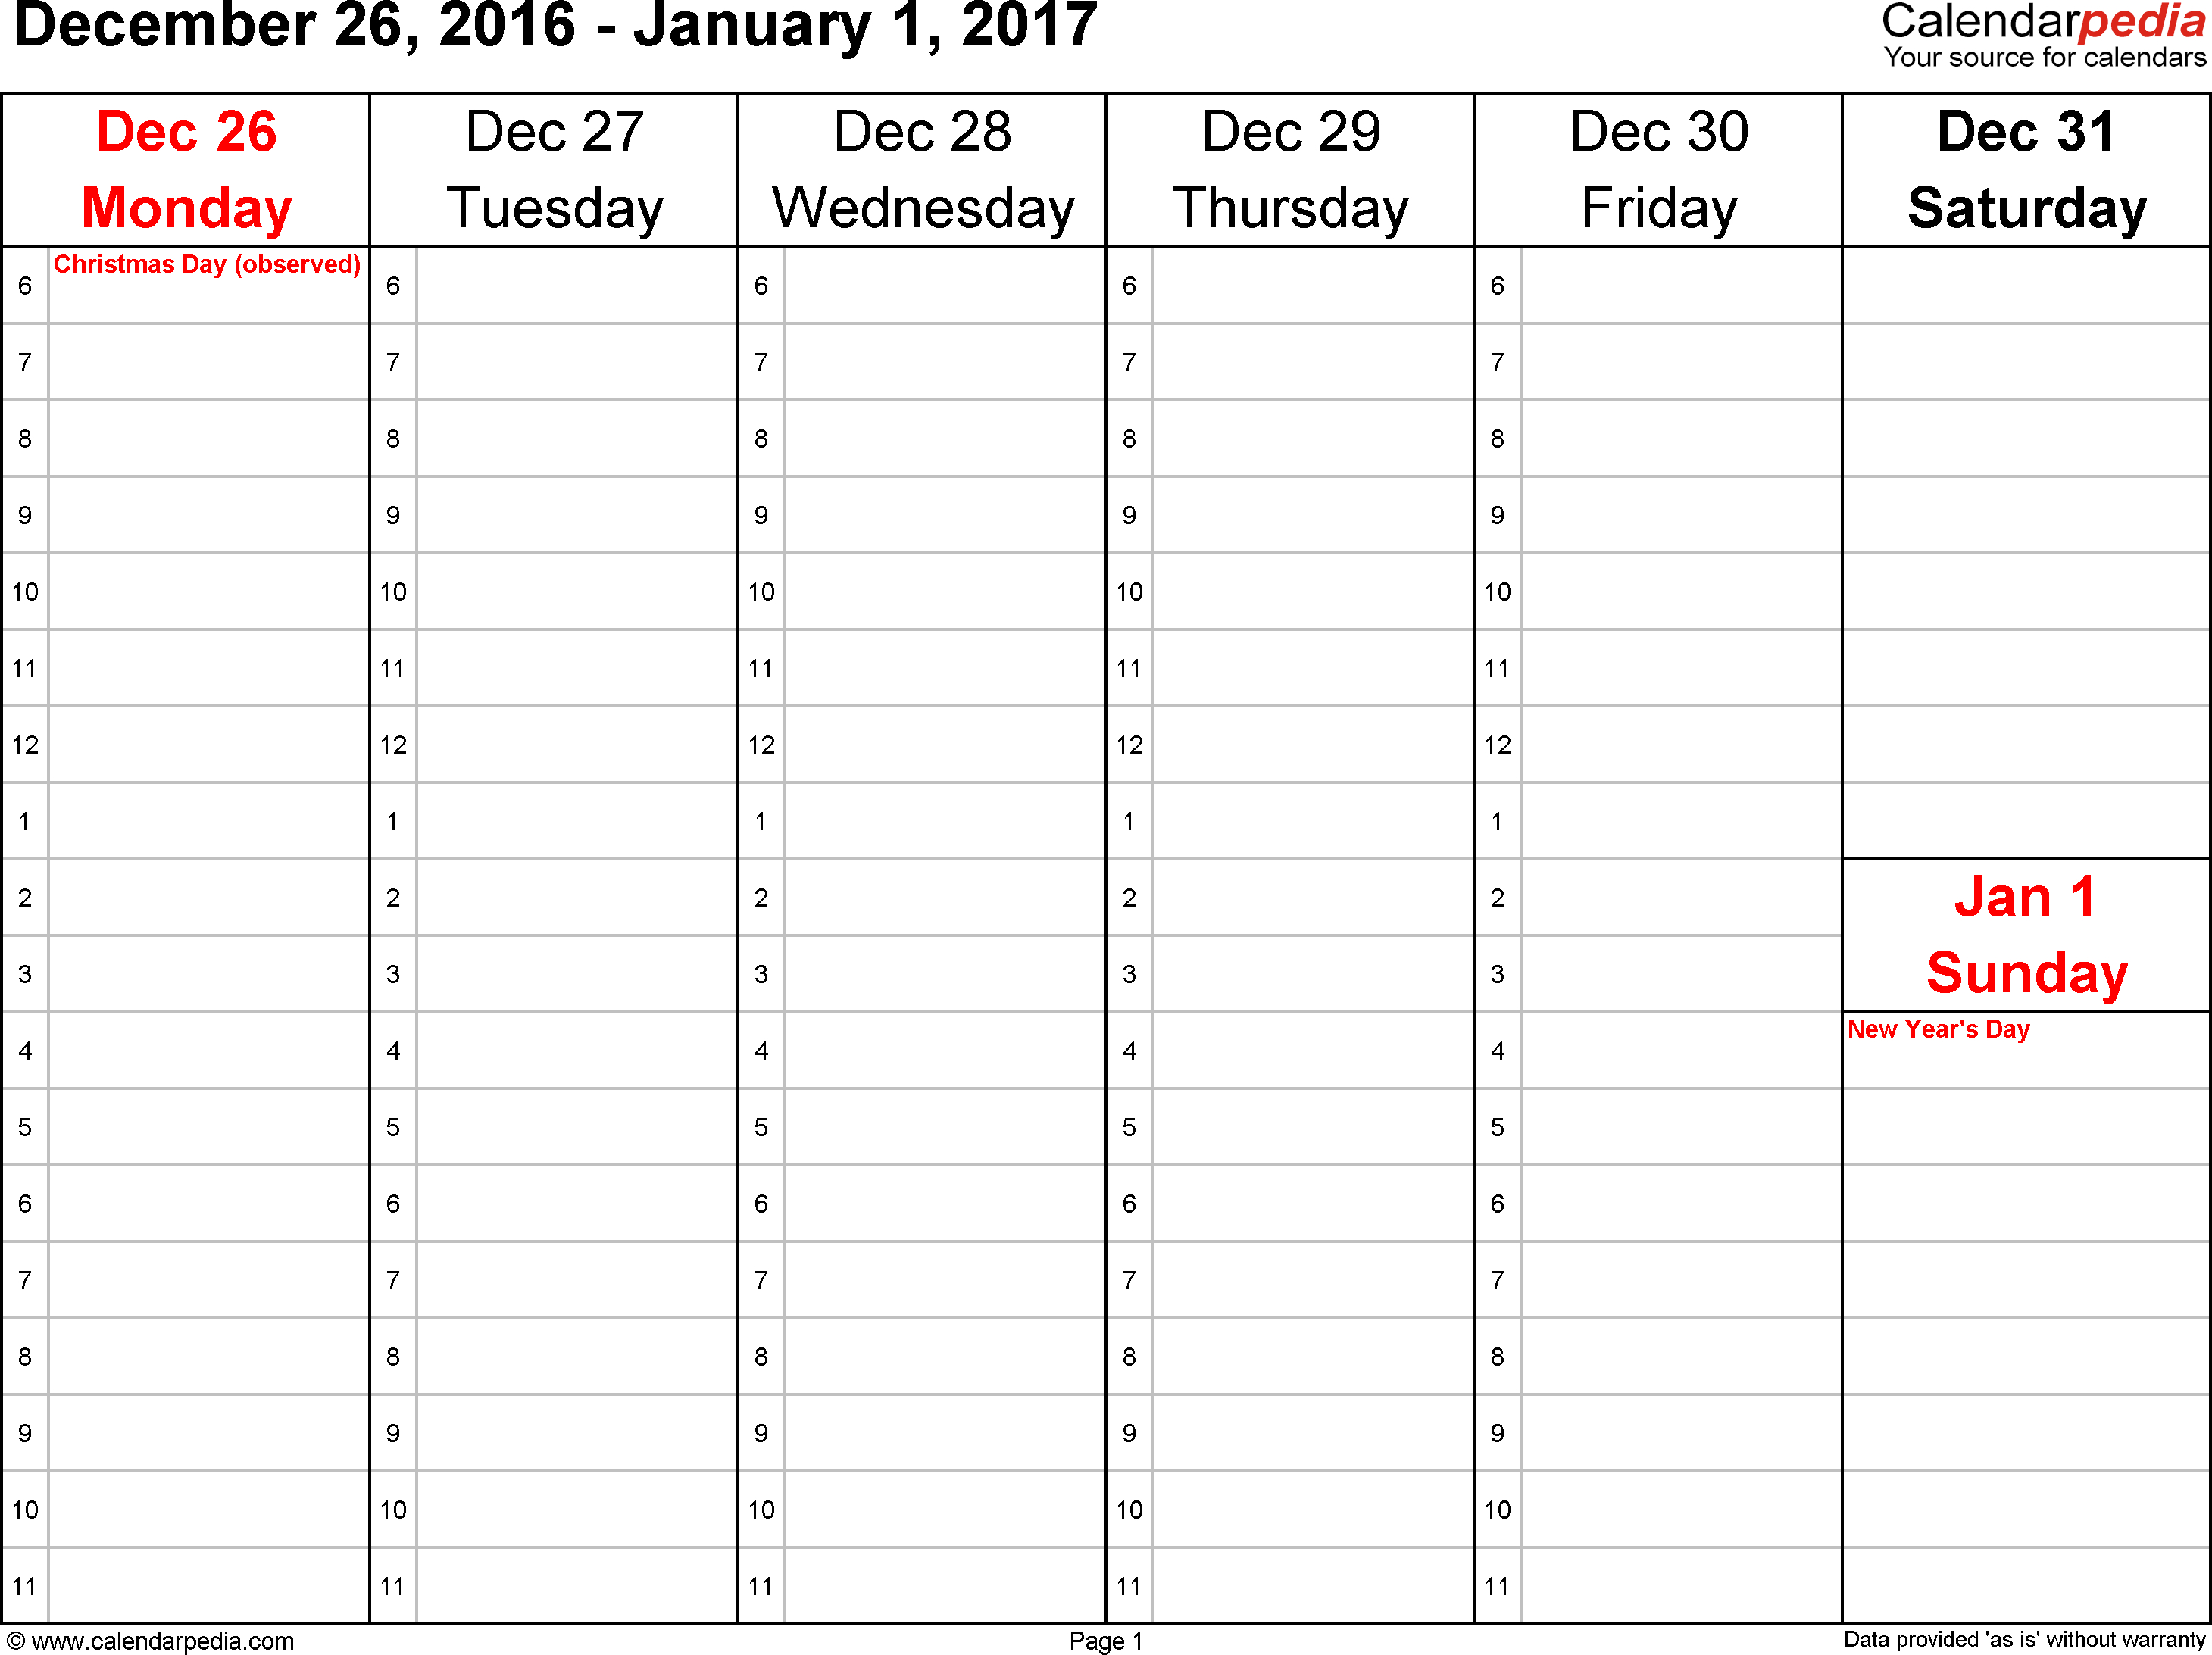 Weekly Calendar 2017 For Excel - 12 Free Printable Templates pertaining to Blank Calendar With Only Weekdays